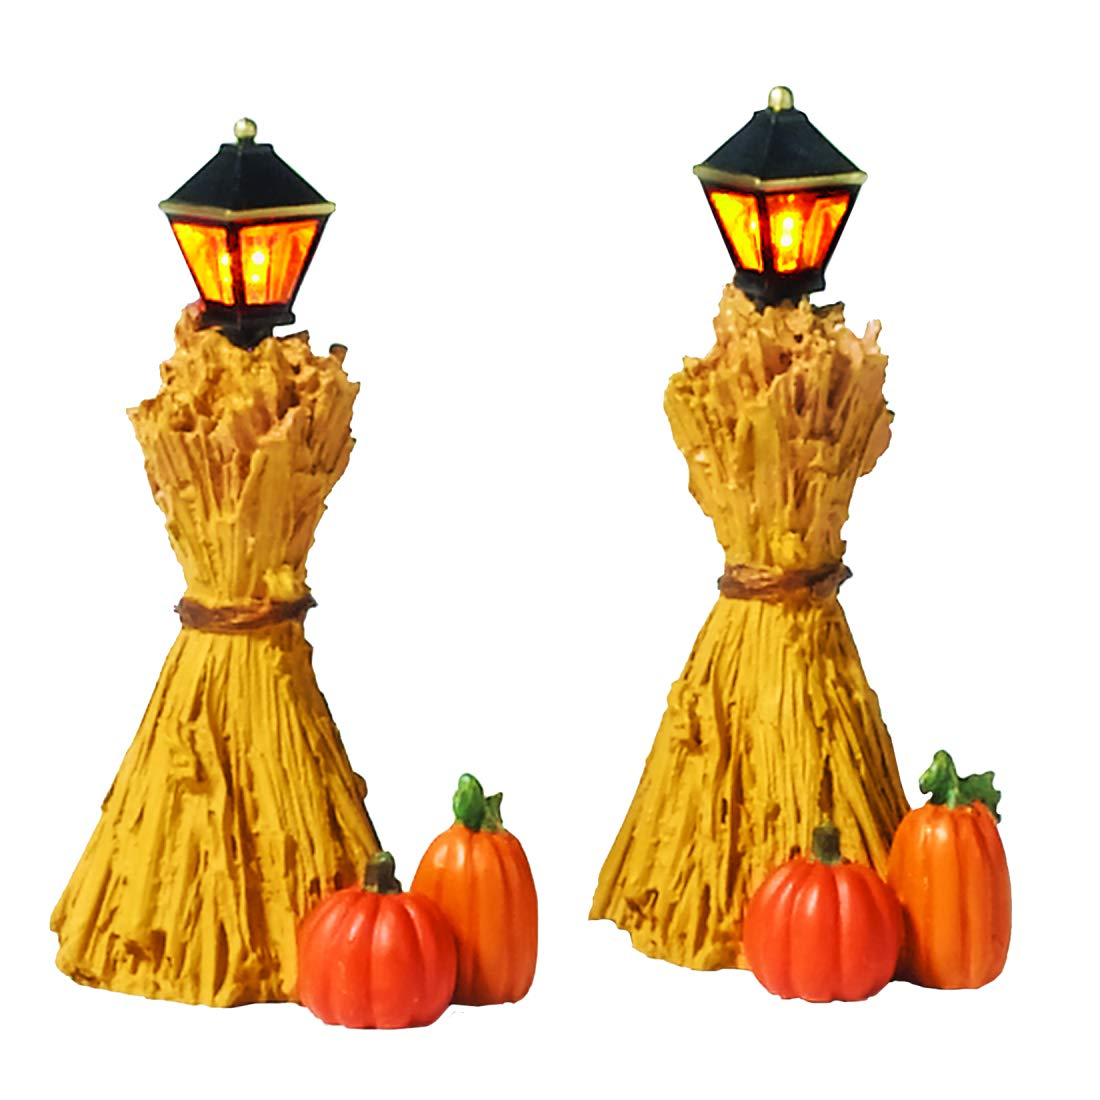 Department 56 Halloween Accessories for Village Collections Harvest Corn Stalk Lantern Lit Figurine Set, 2.25 Inch, Multicolor by Department 56